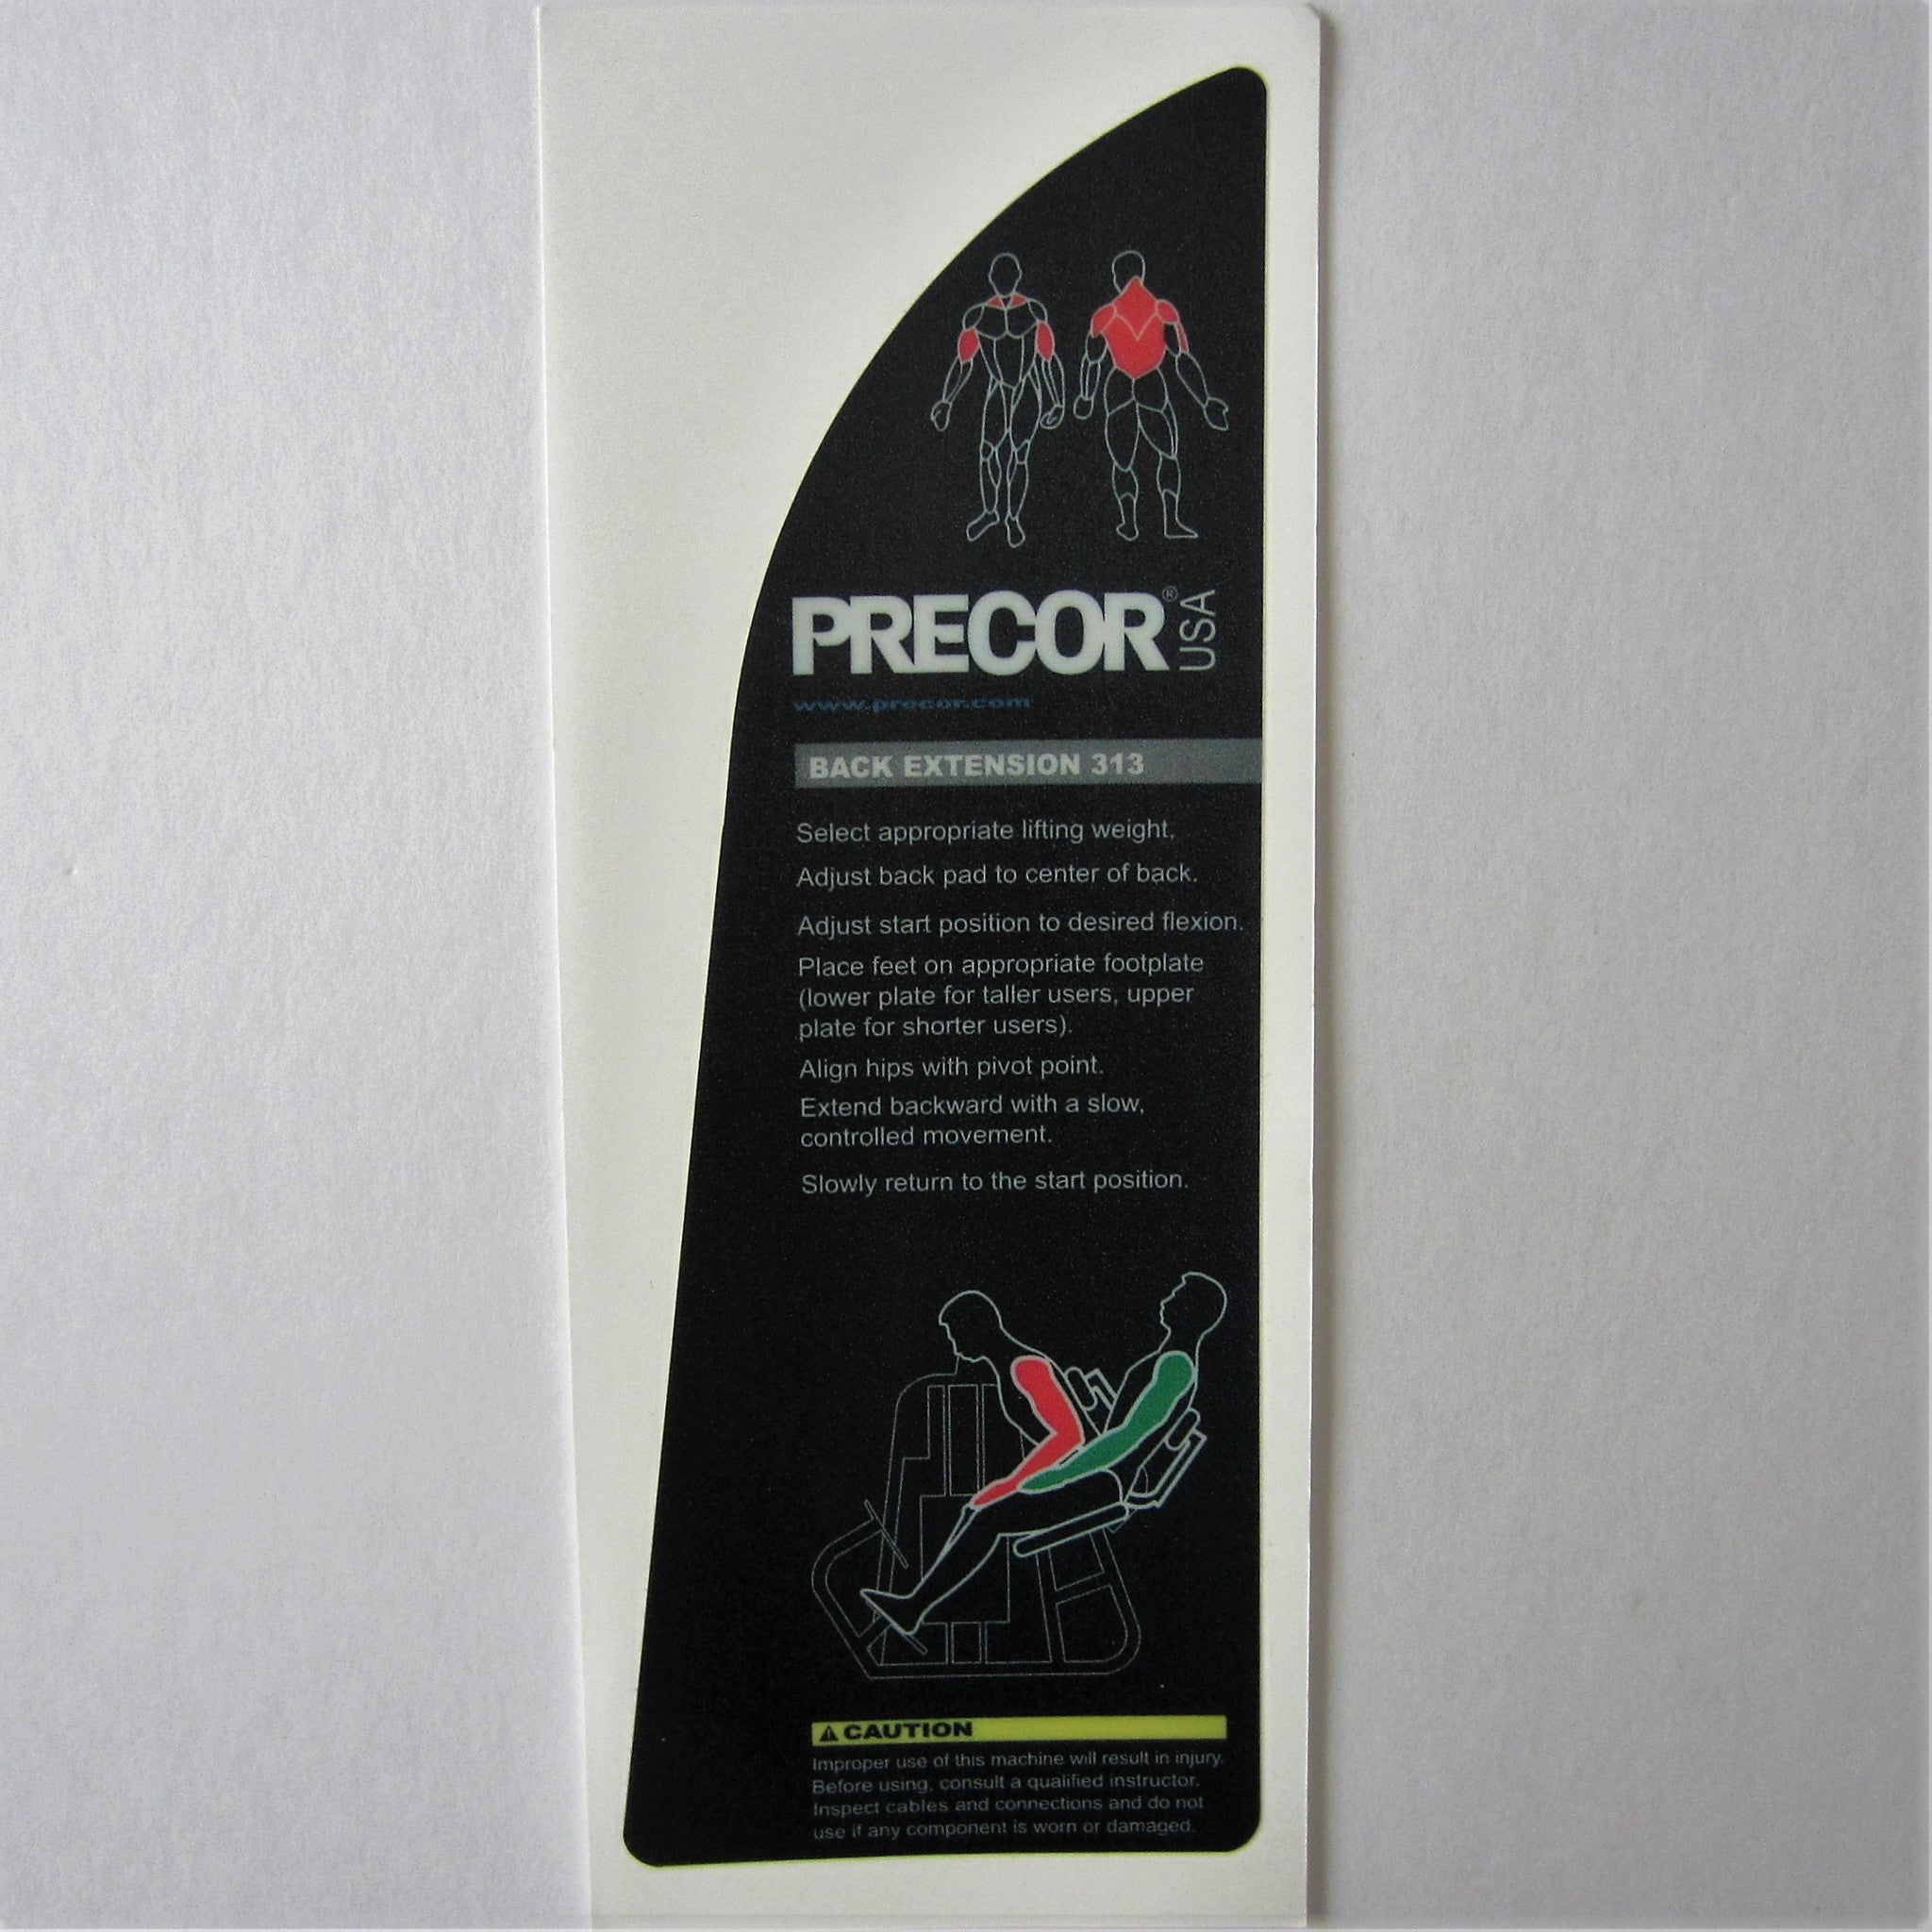 Precor 313 Back Extension